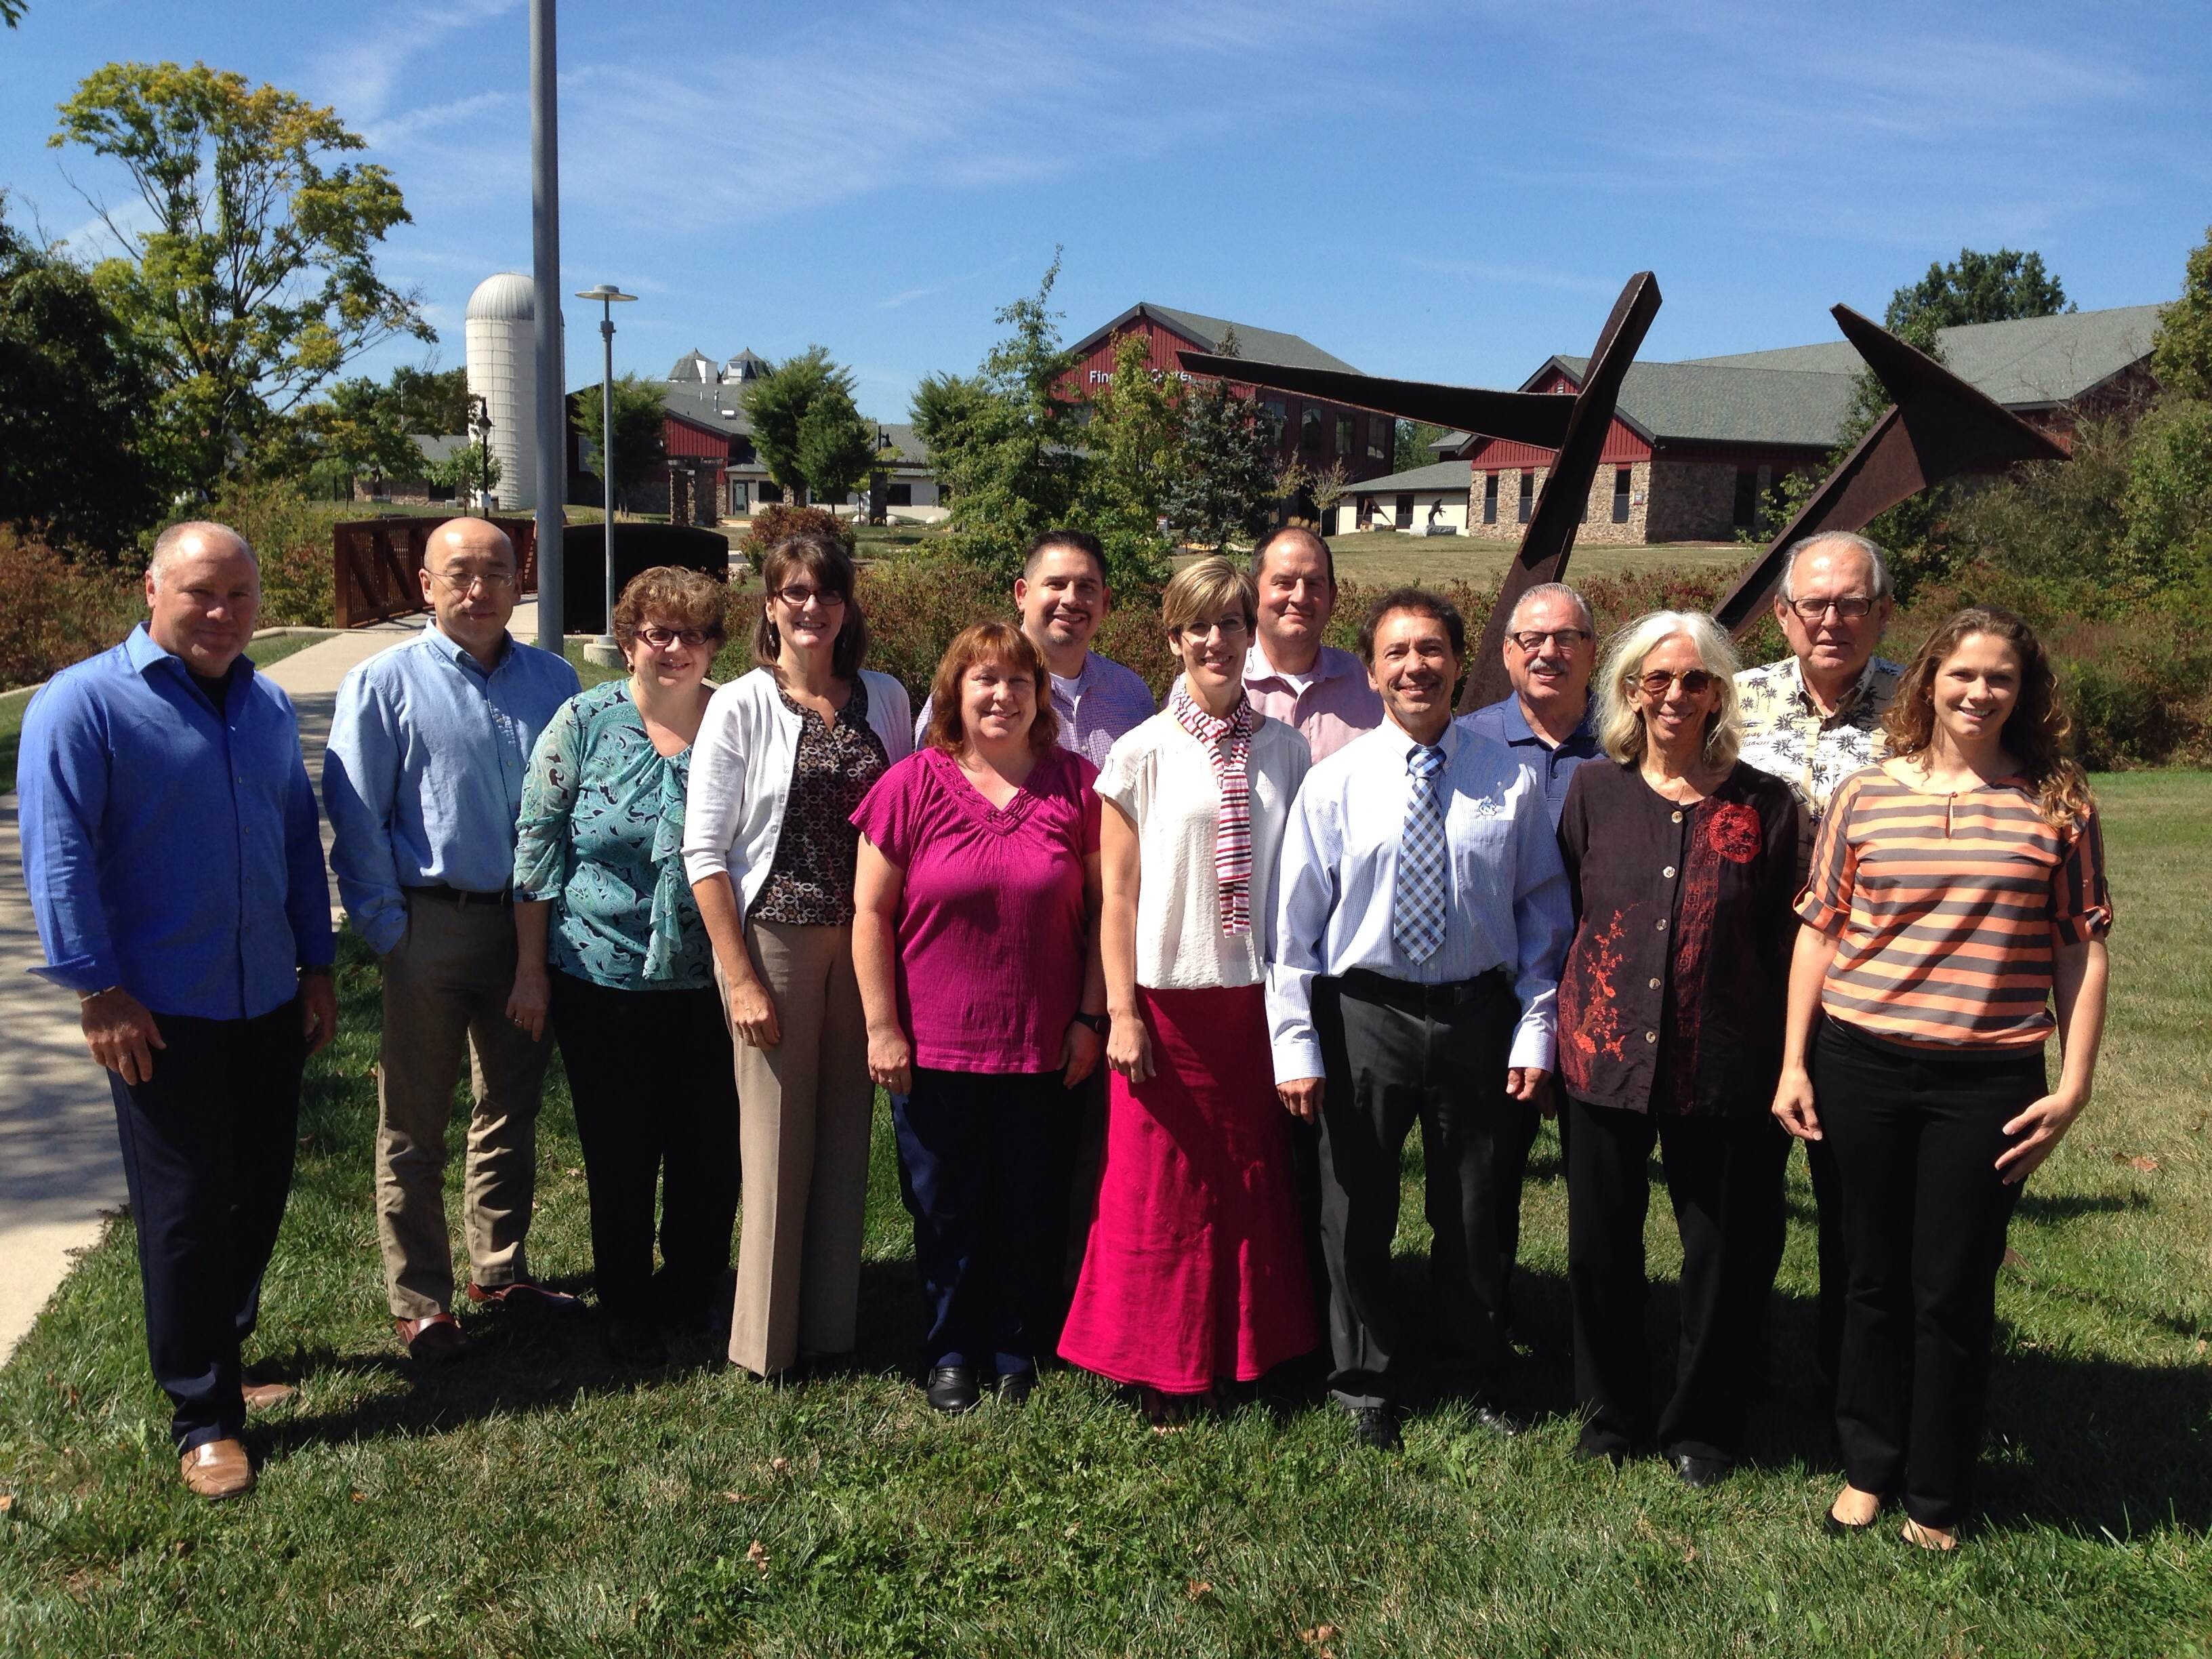 The NBC2 Advisory Board met on September 12, 2014, to discuss recent events, accomplishments and upcoming activities.